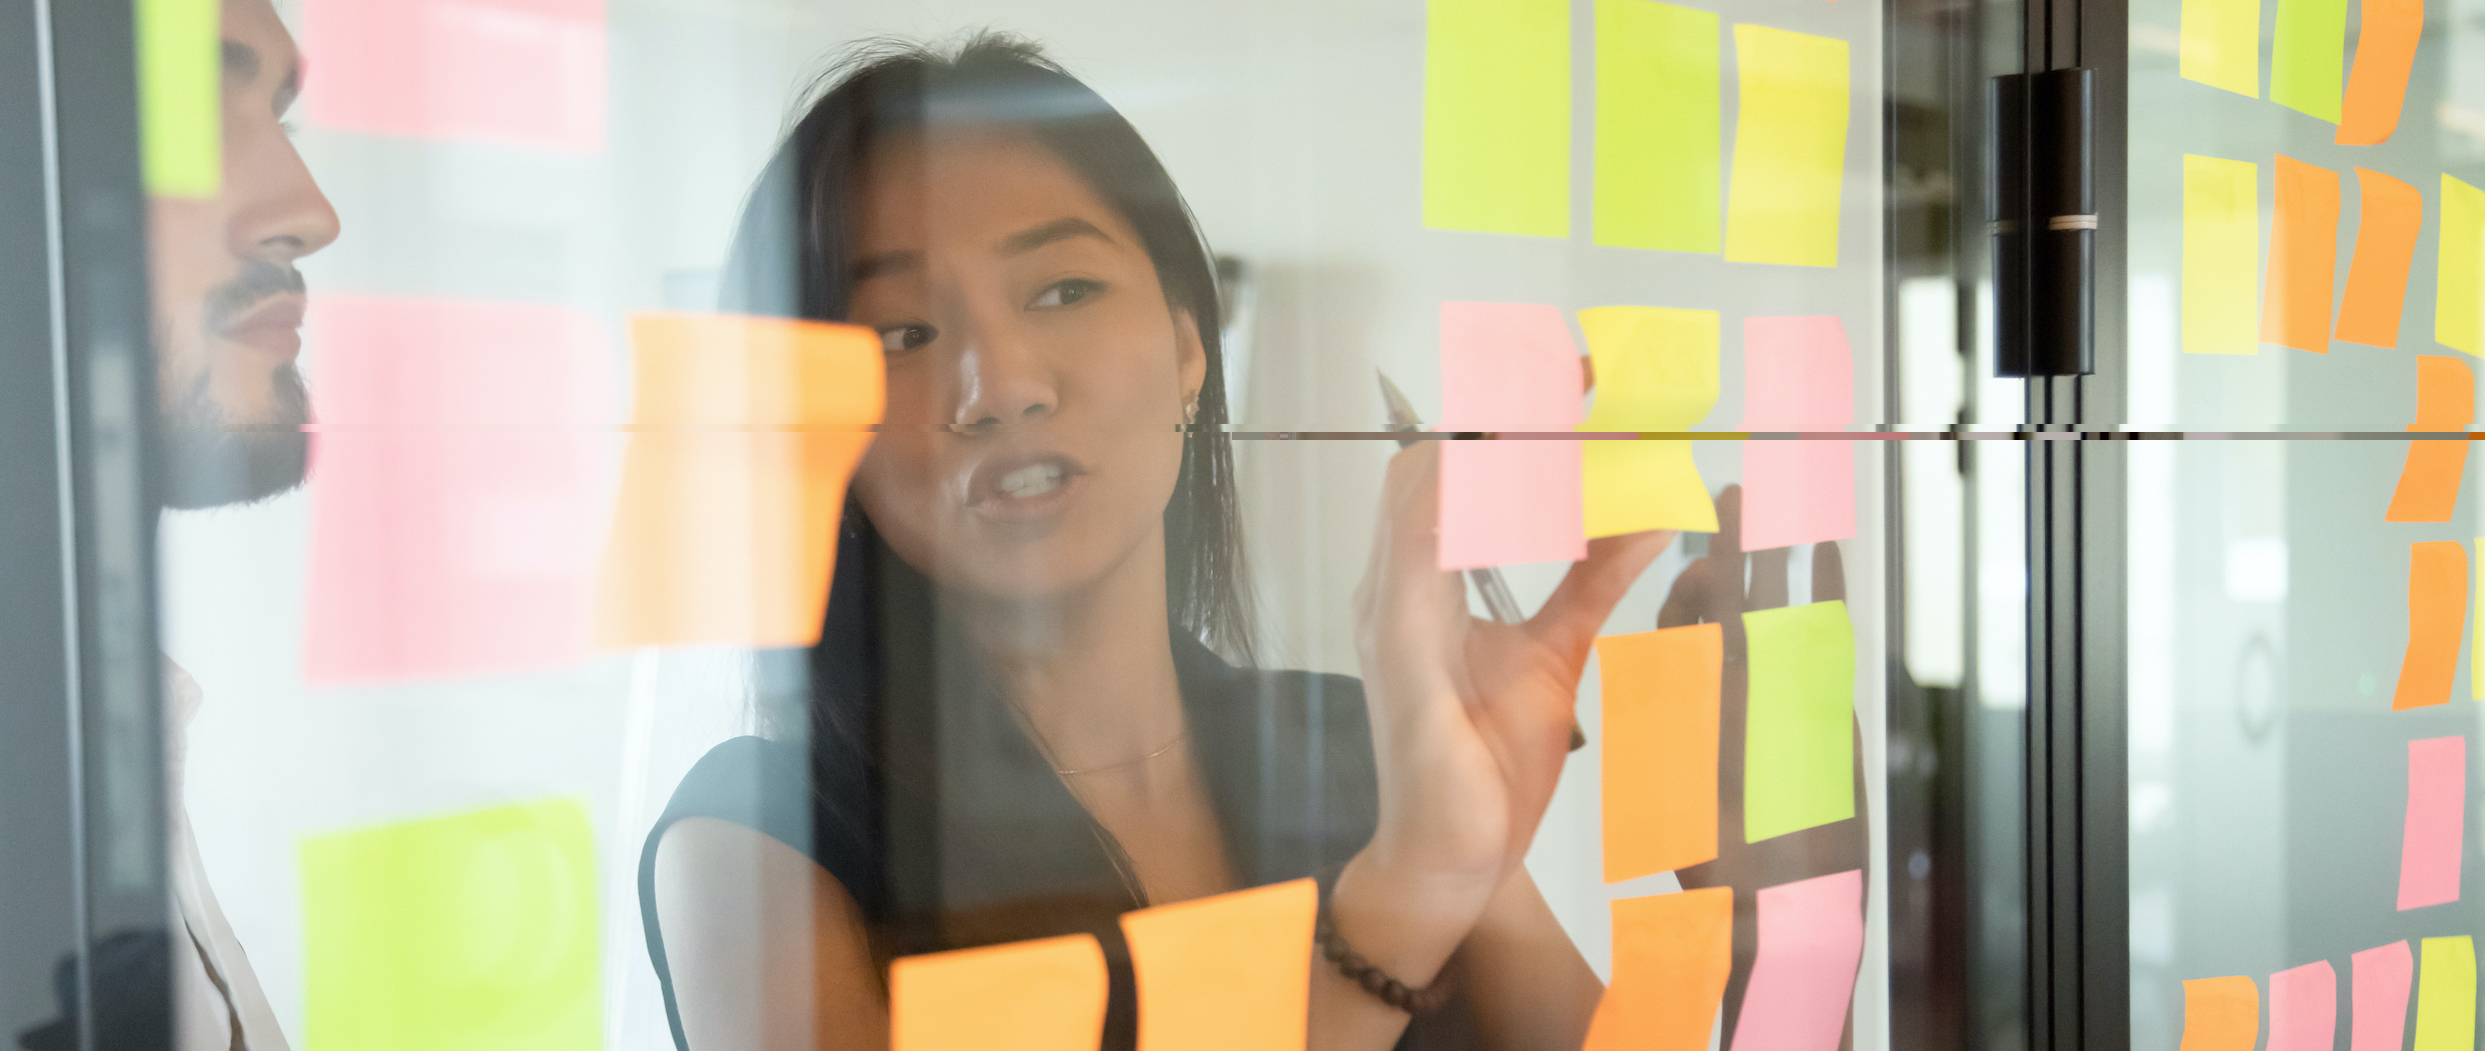 Two people looking at a collection of post-it notes